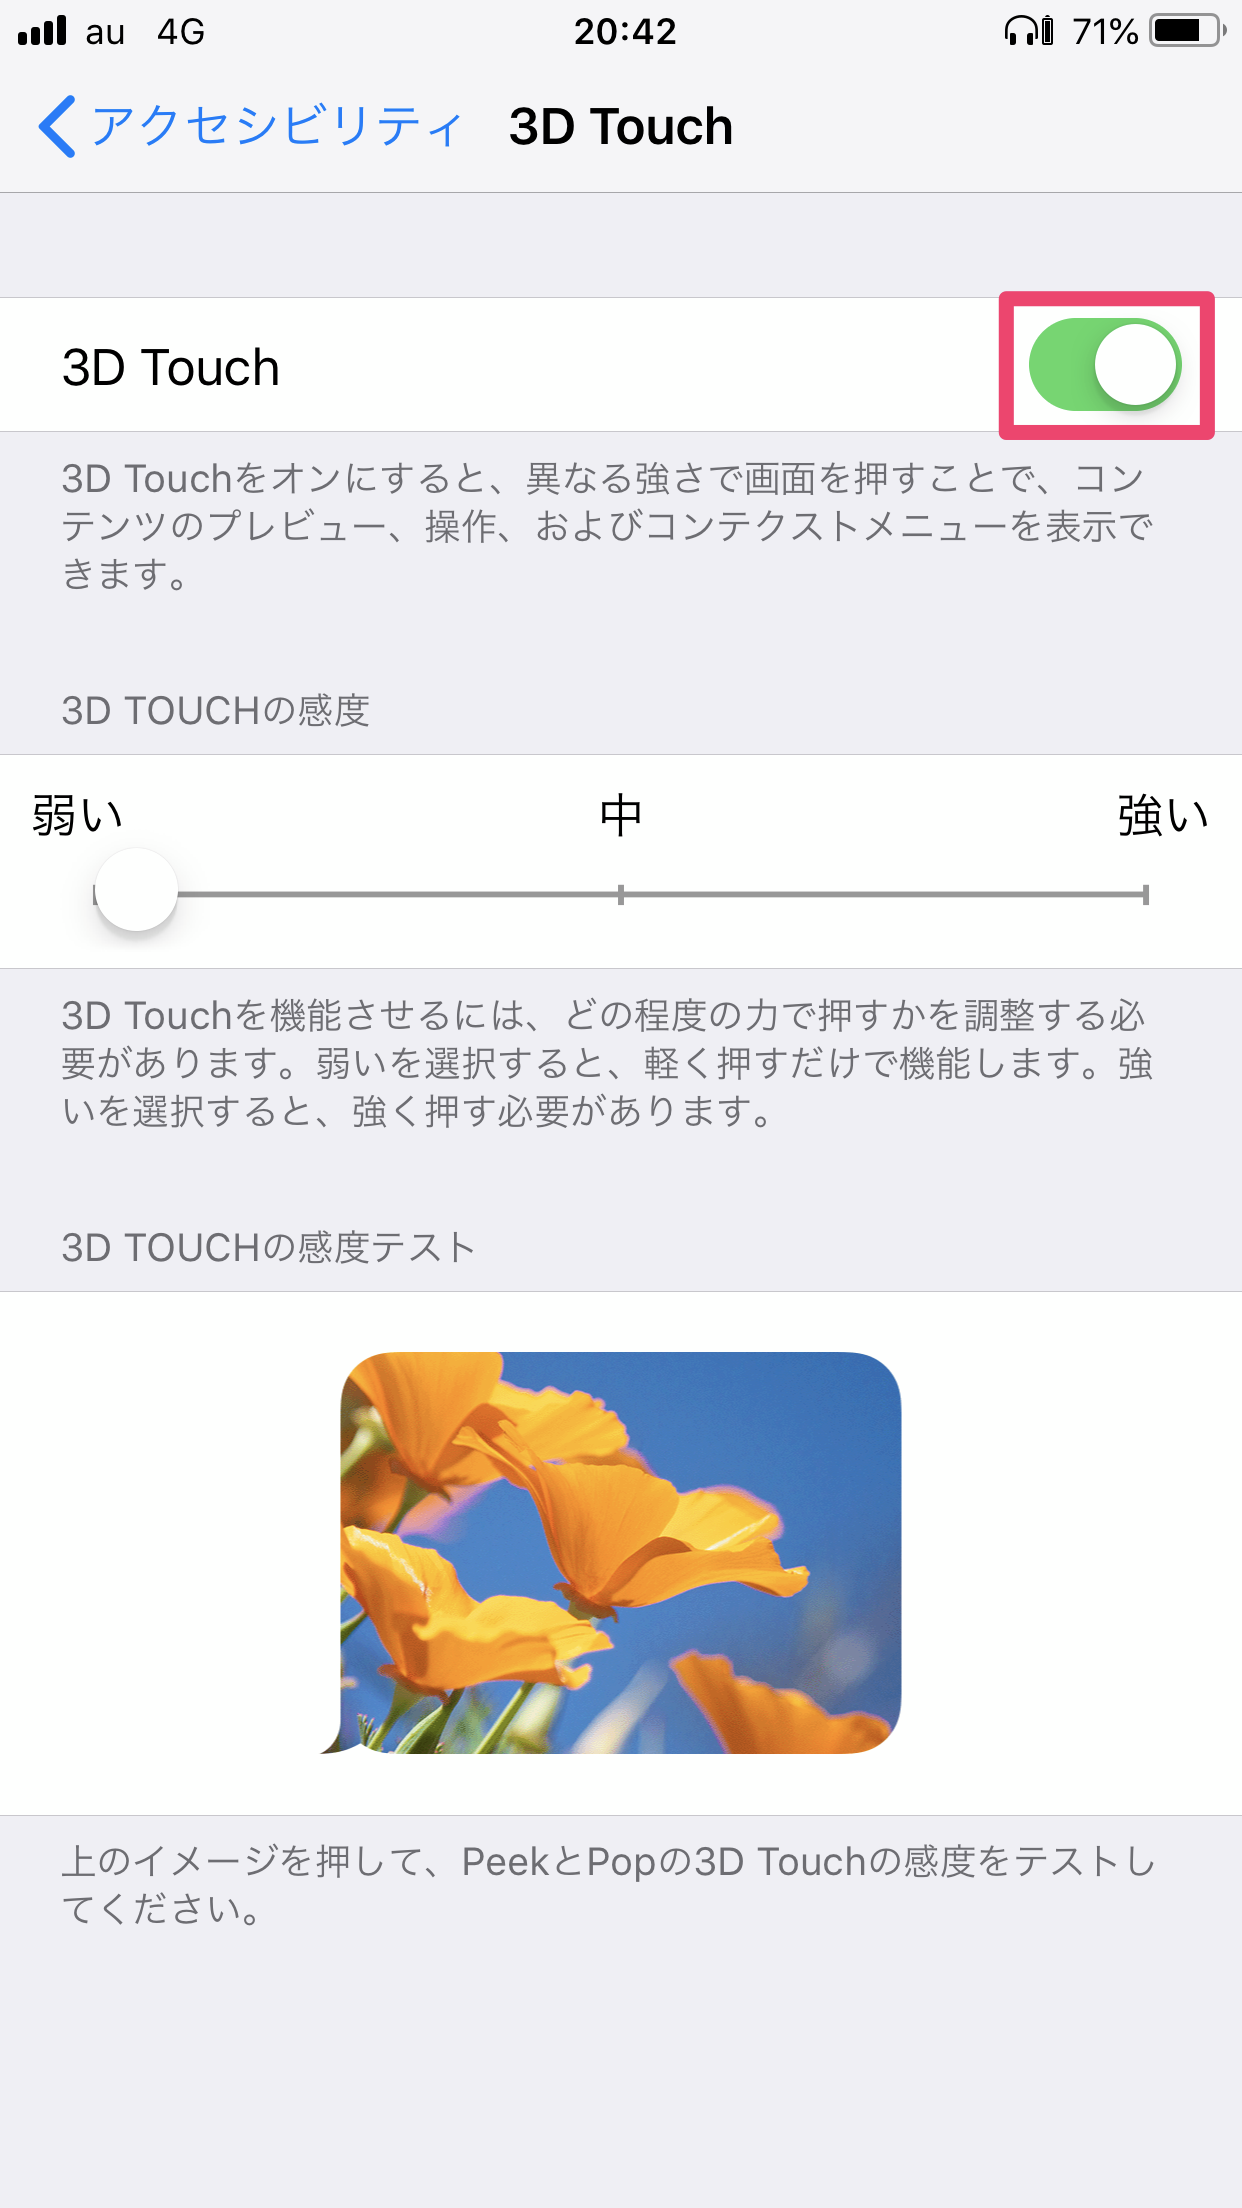 3D Touchの機能を『オン』